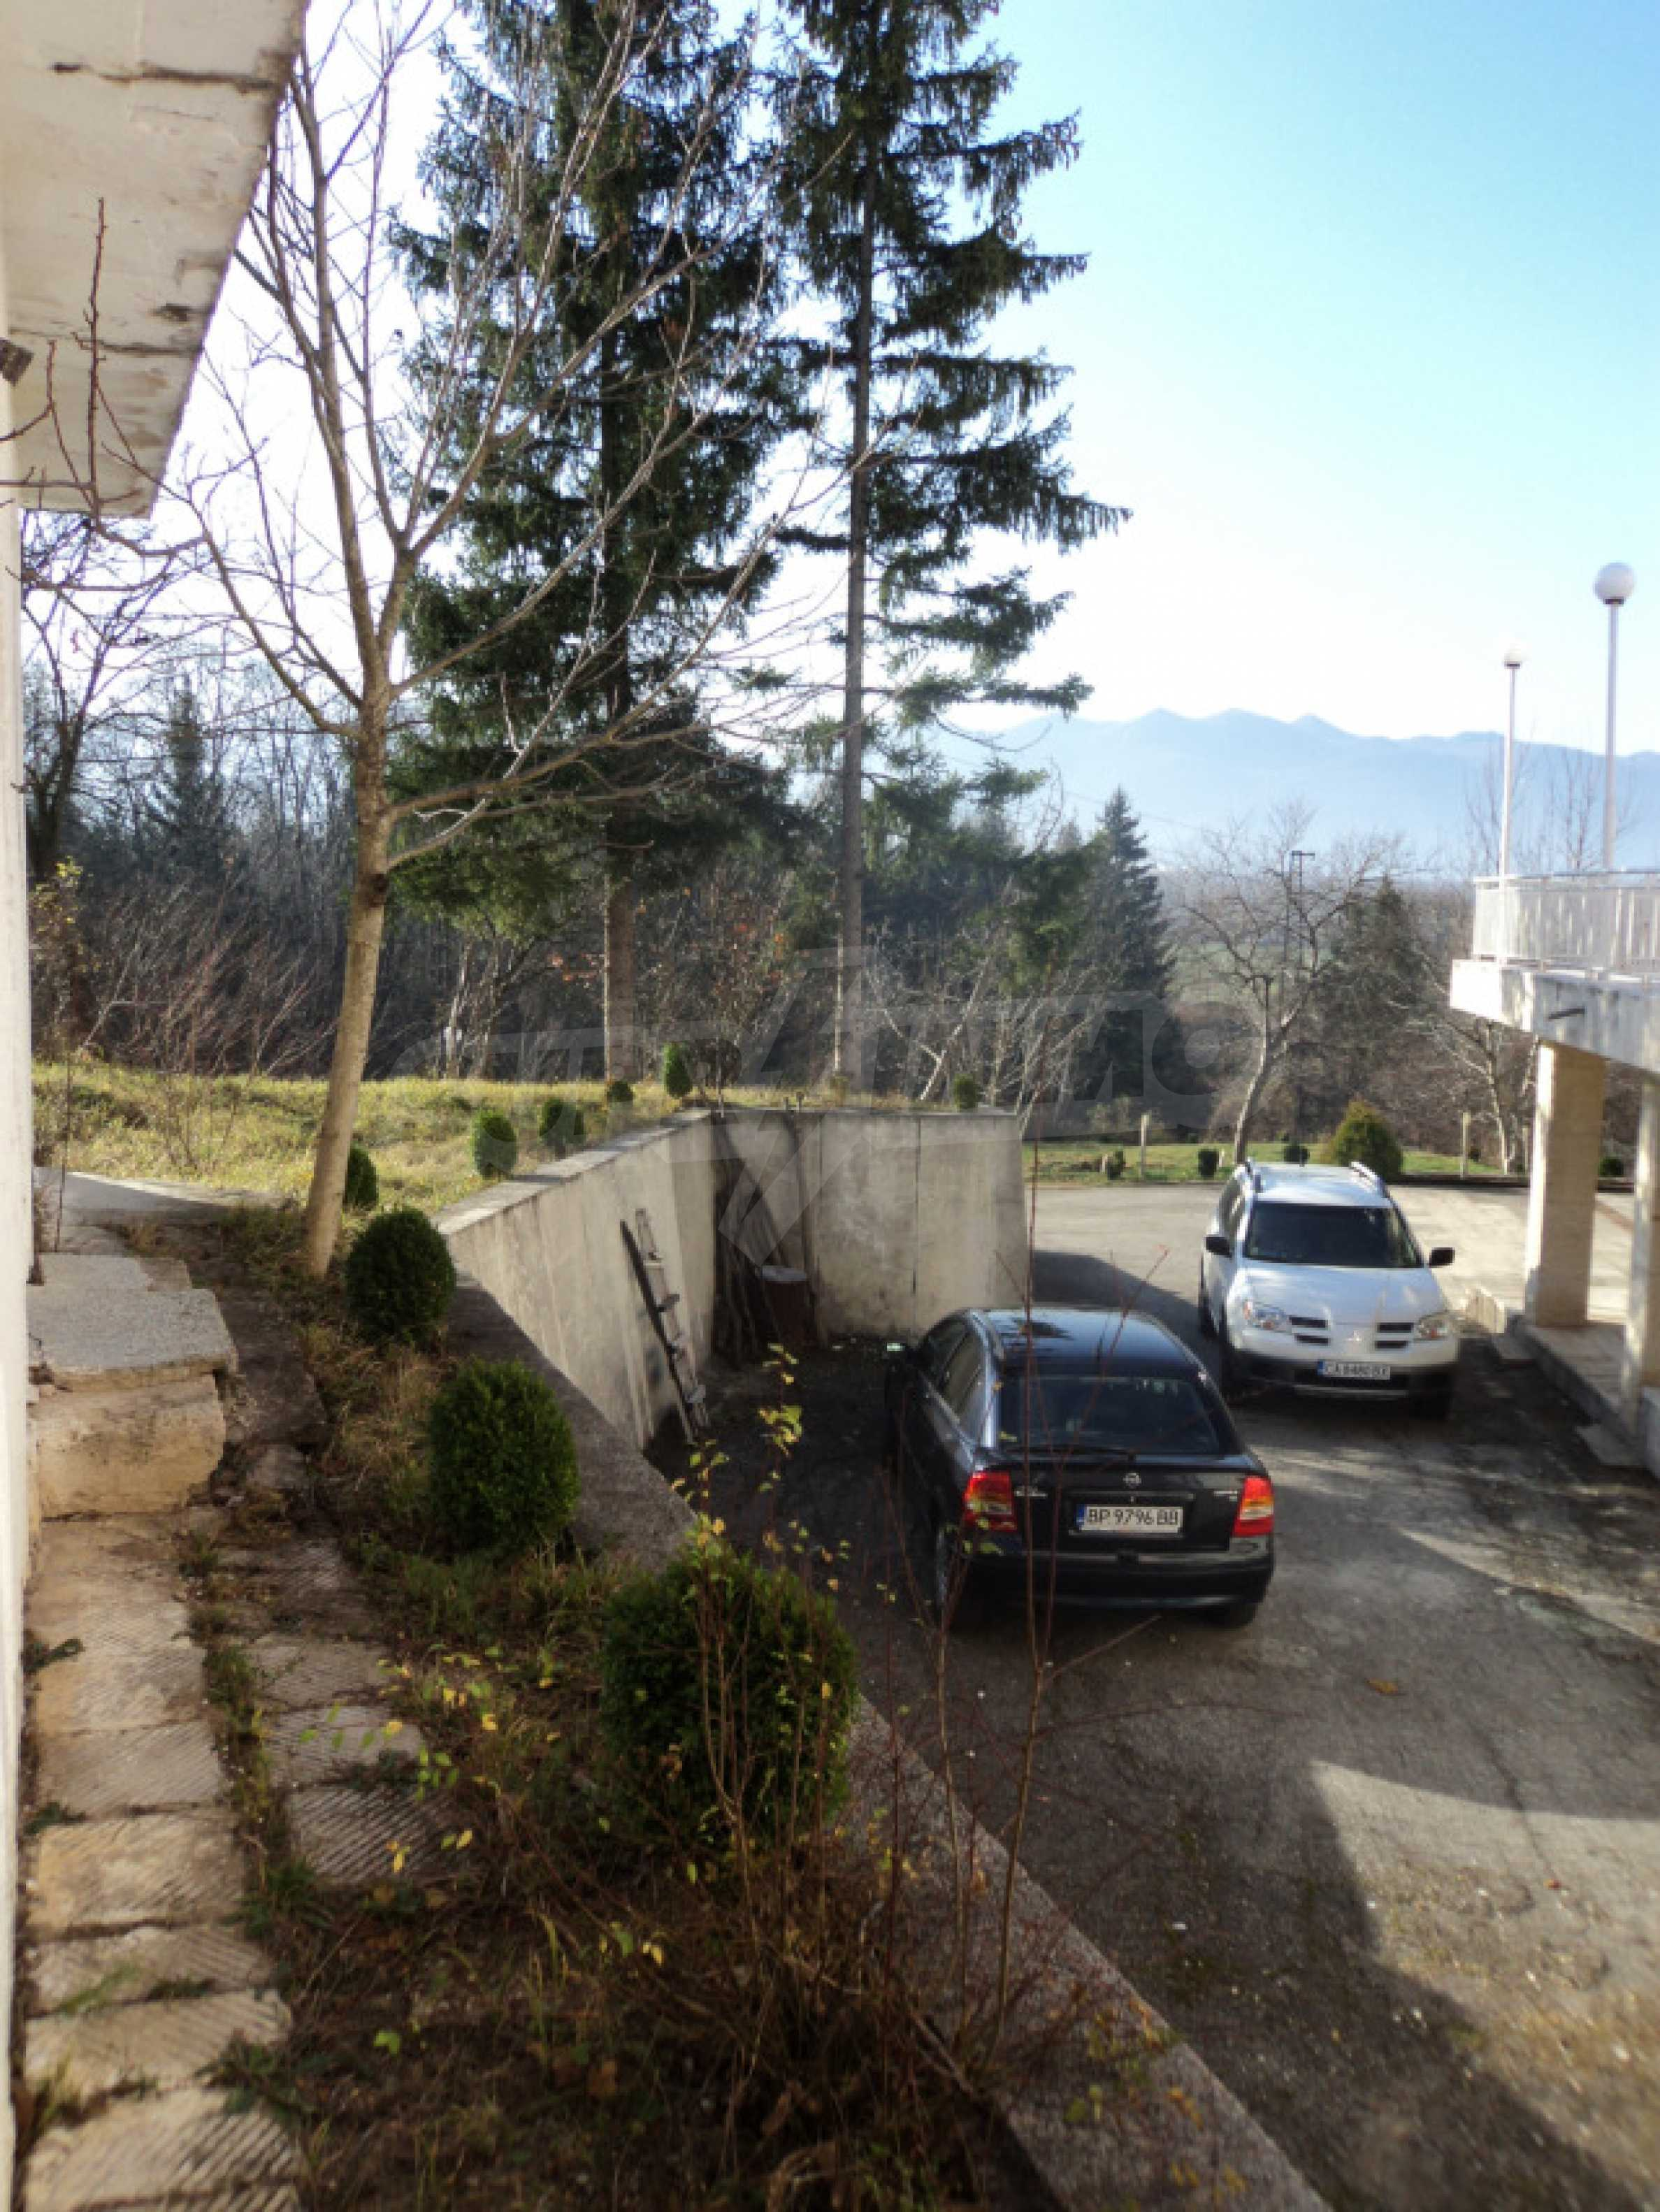 Residence close to a mountain  56